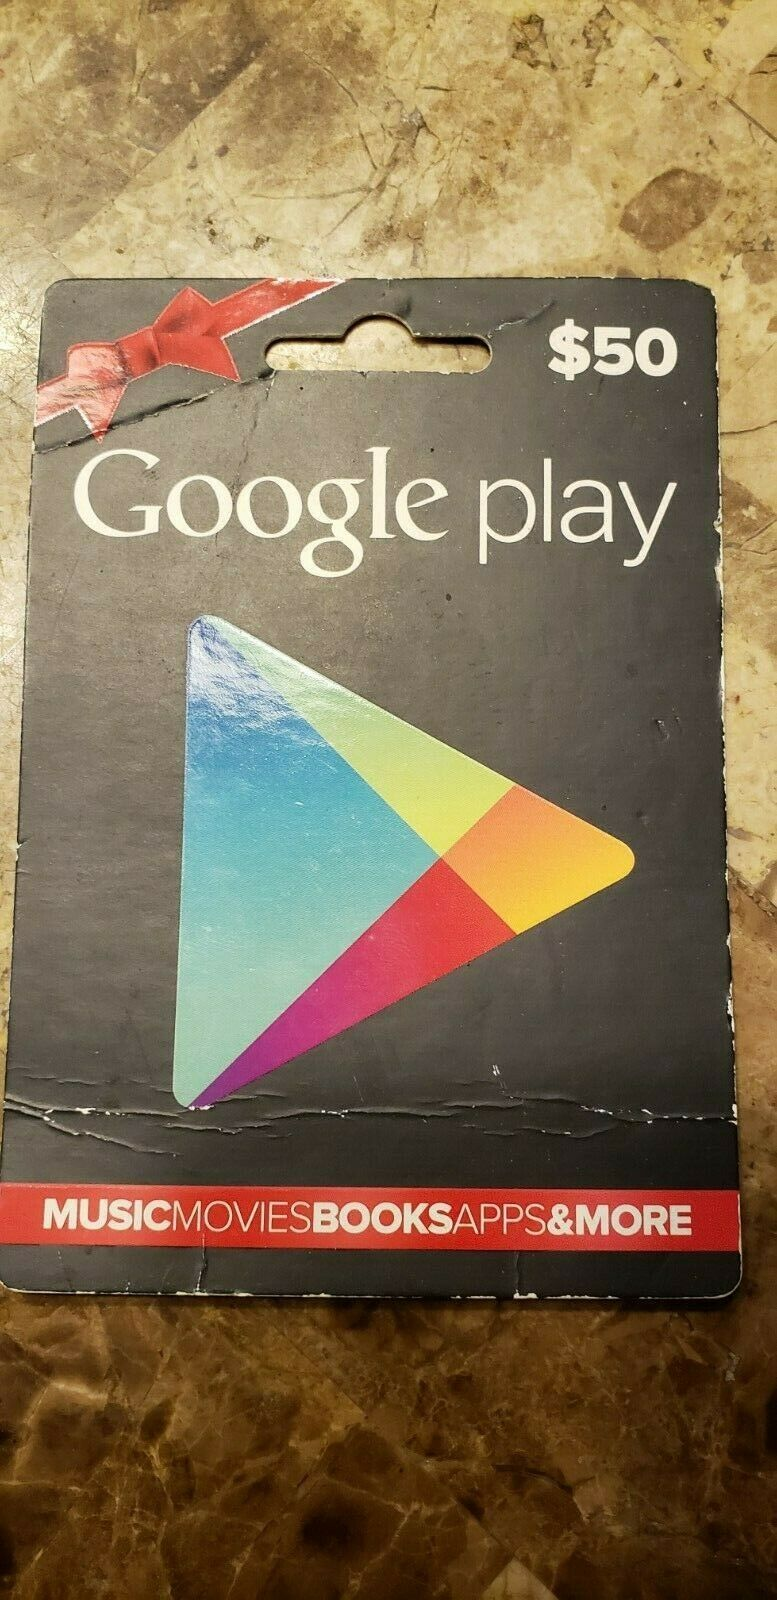 Google Play 50 USD Gift Card - $45.00